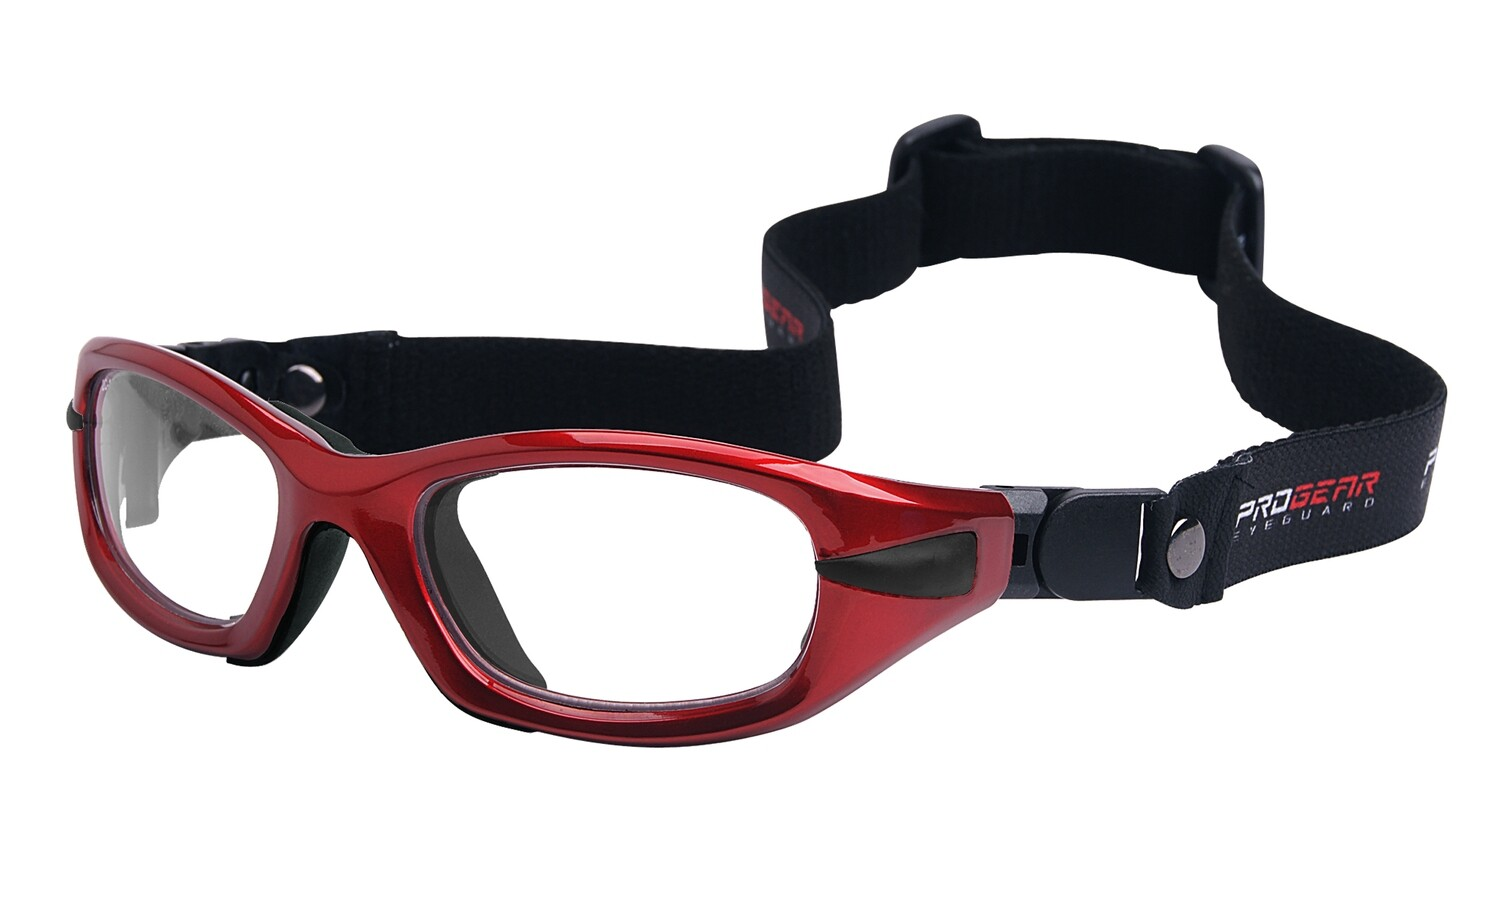 Eyeguard - M size - Strap version (10 colors)